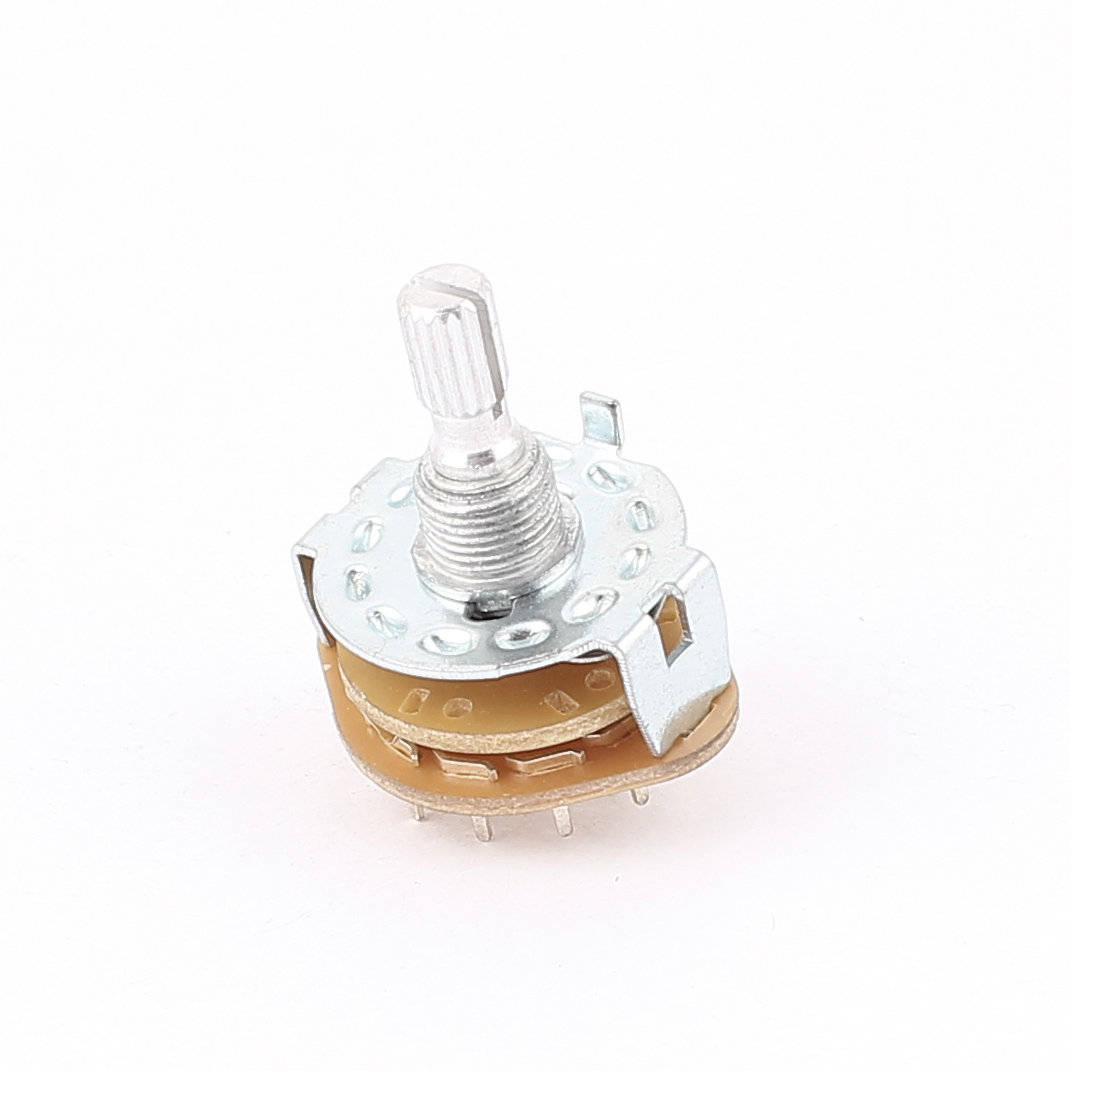 6mm Shaft 2 Poles 6 Position Band Channel Rotary Switch Selector